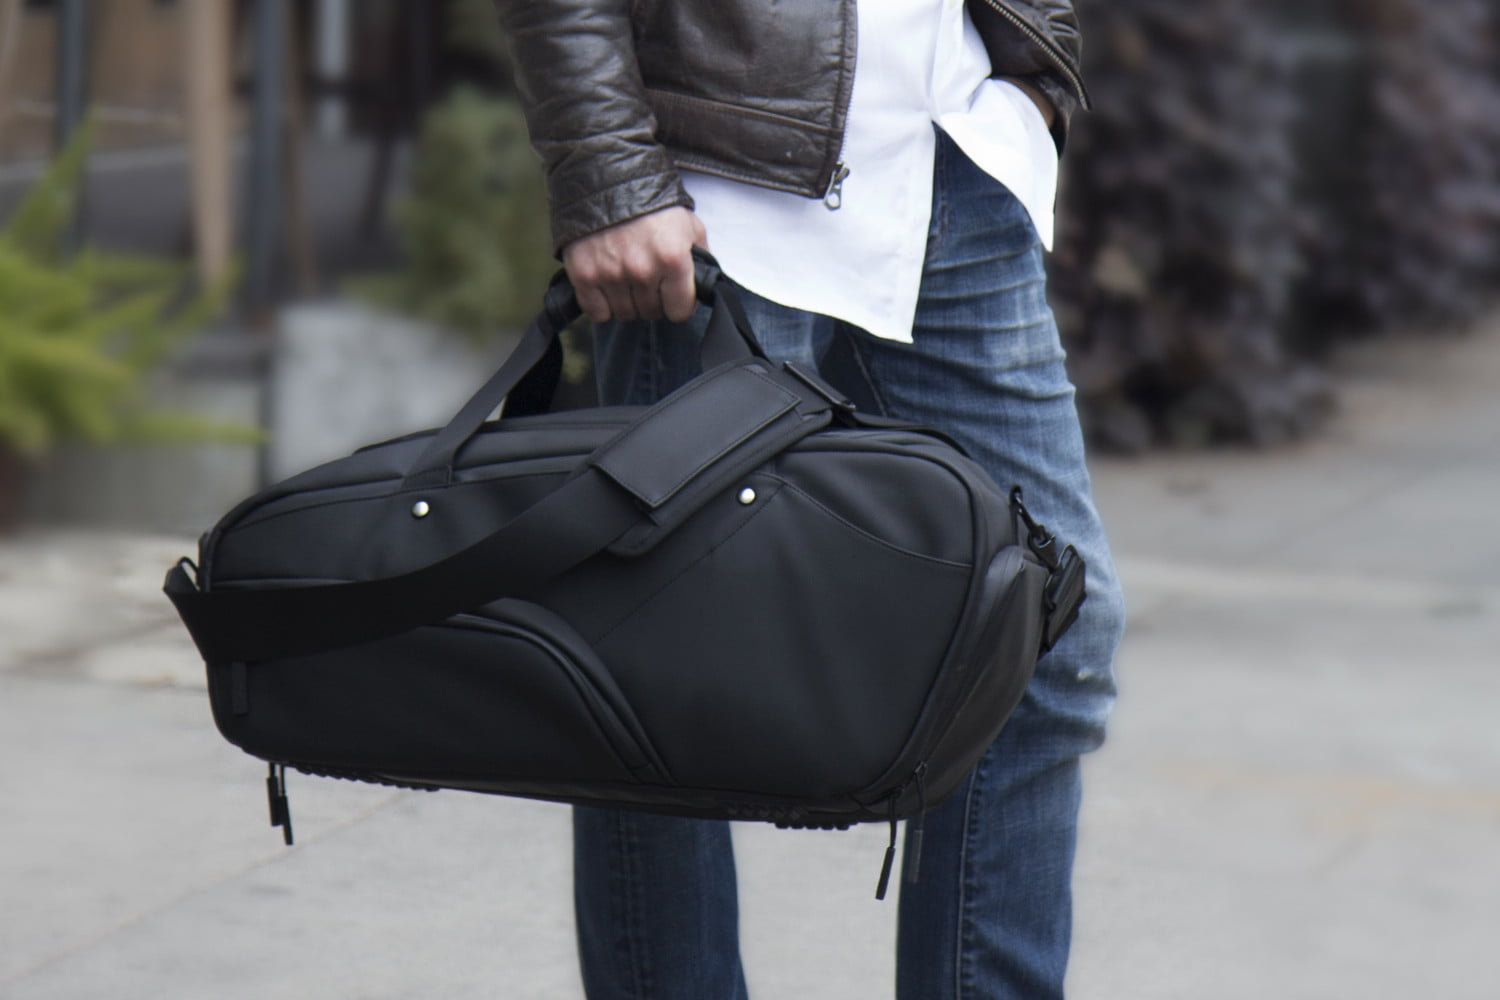 Duffel Bag Gets Reinvented For Tech Savvy Business Travel Digital Trends